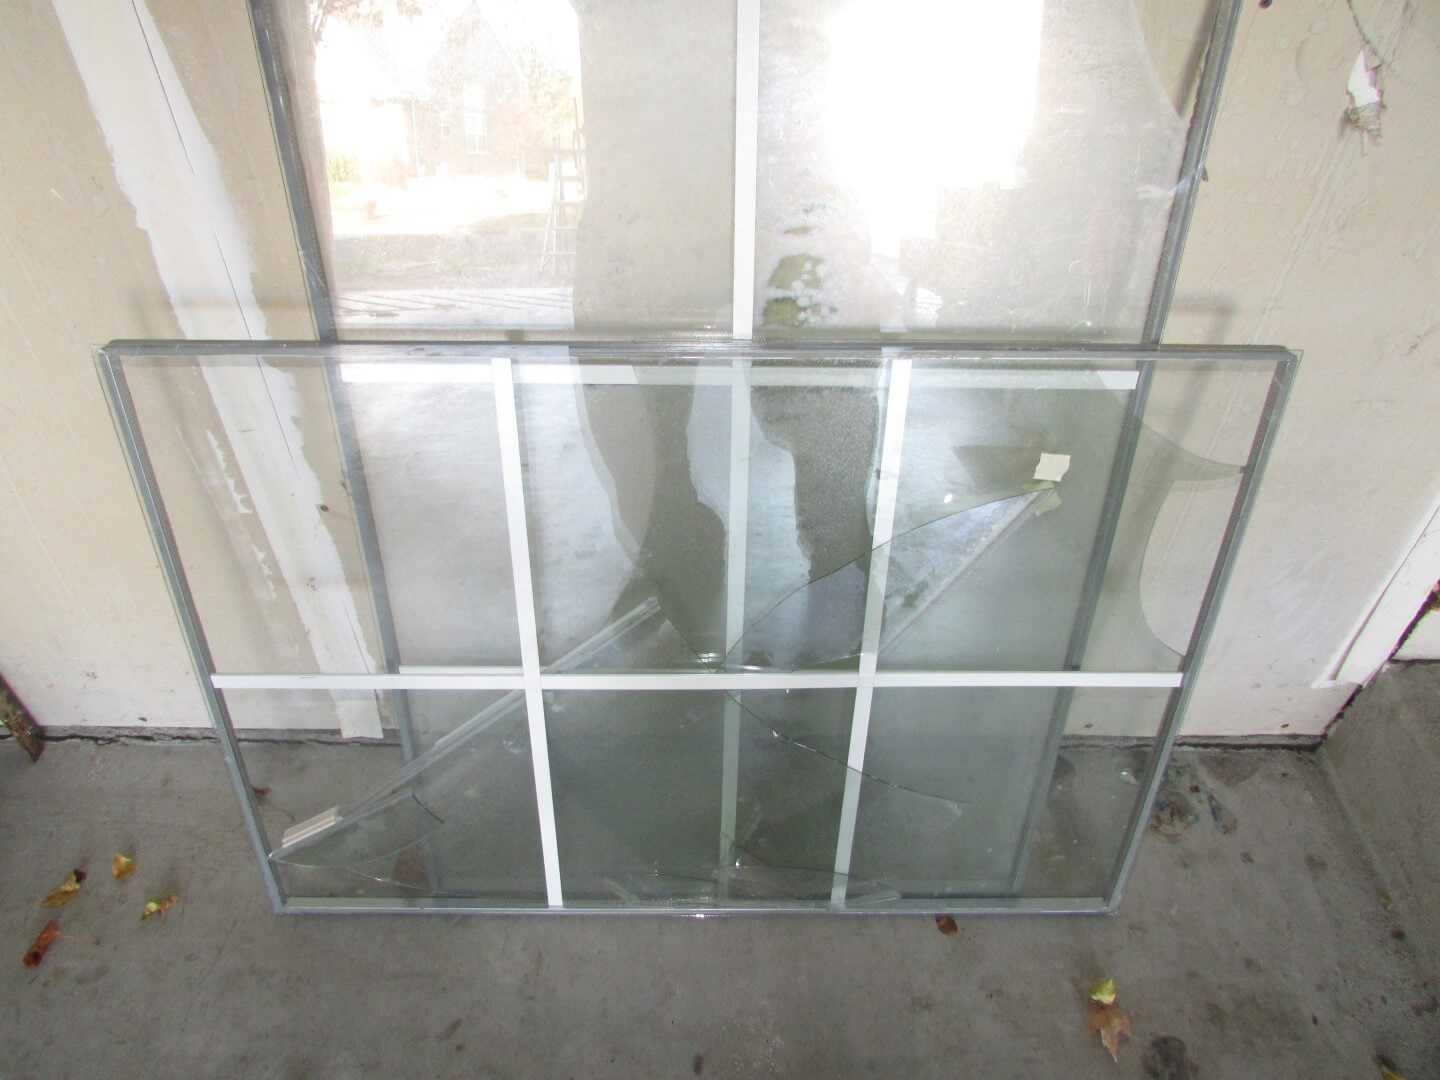 Repairing a window with fogged glass